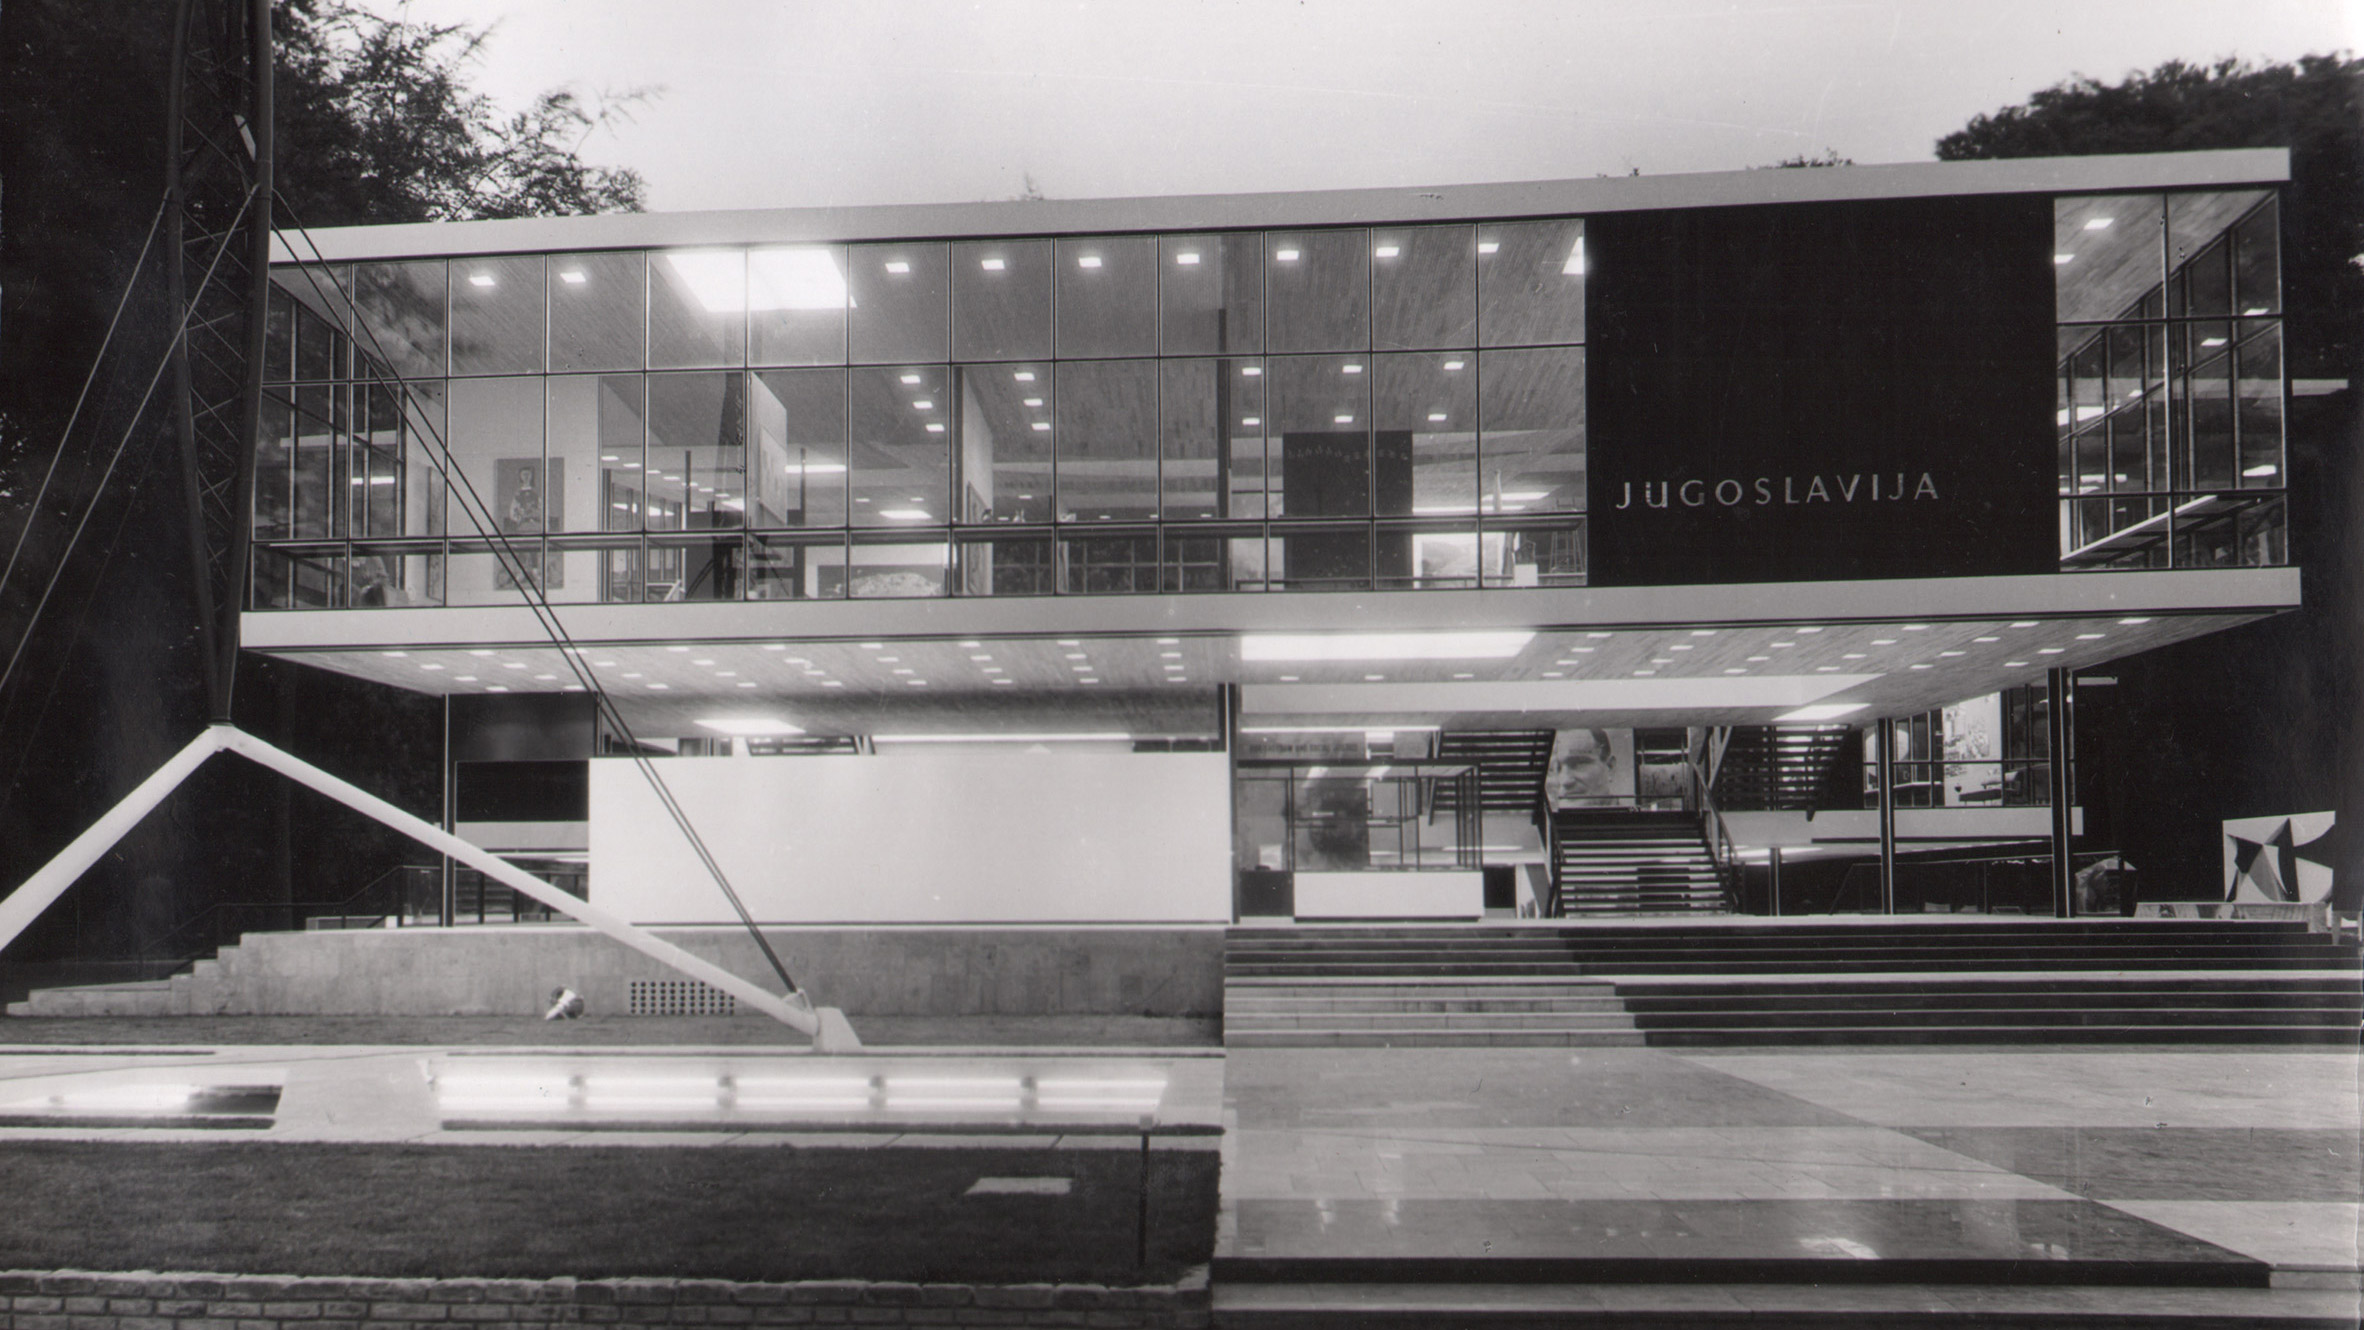 Yugoslav Pavilion at Expo 58. 1958. Brussels, Belgium. Photo: MoMA